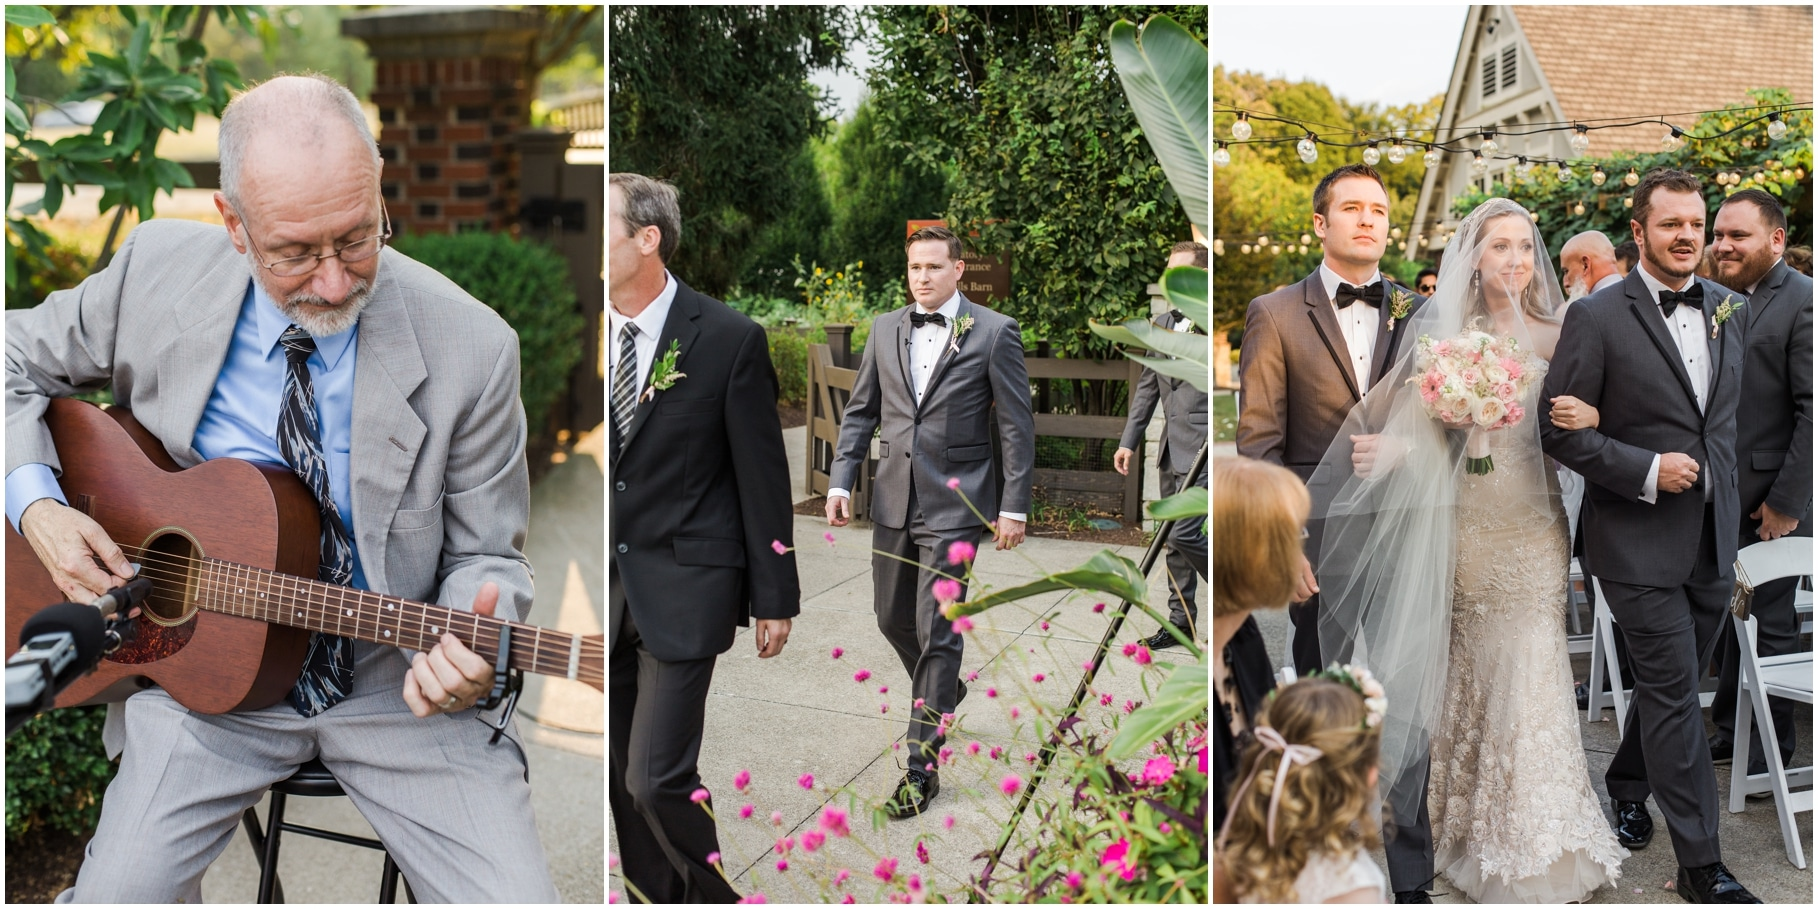 adam lowe photography, columbus, ohio, midwest, photographer, style, love, stylish, fpc, franklin park conservatory, wedding photographer,jan kish, flowerman, sadie baby sweets, martini affair, berta bridal, paris, debra moreland, generation tux, Reverly, azazie, kate mari, badgley mischka, dunkirk designs, miss design berry